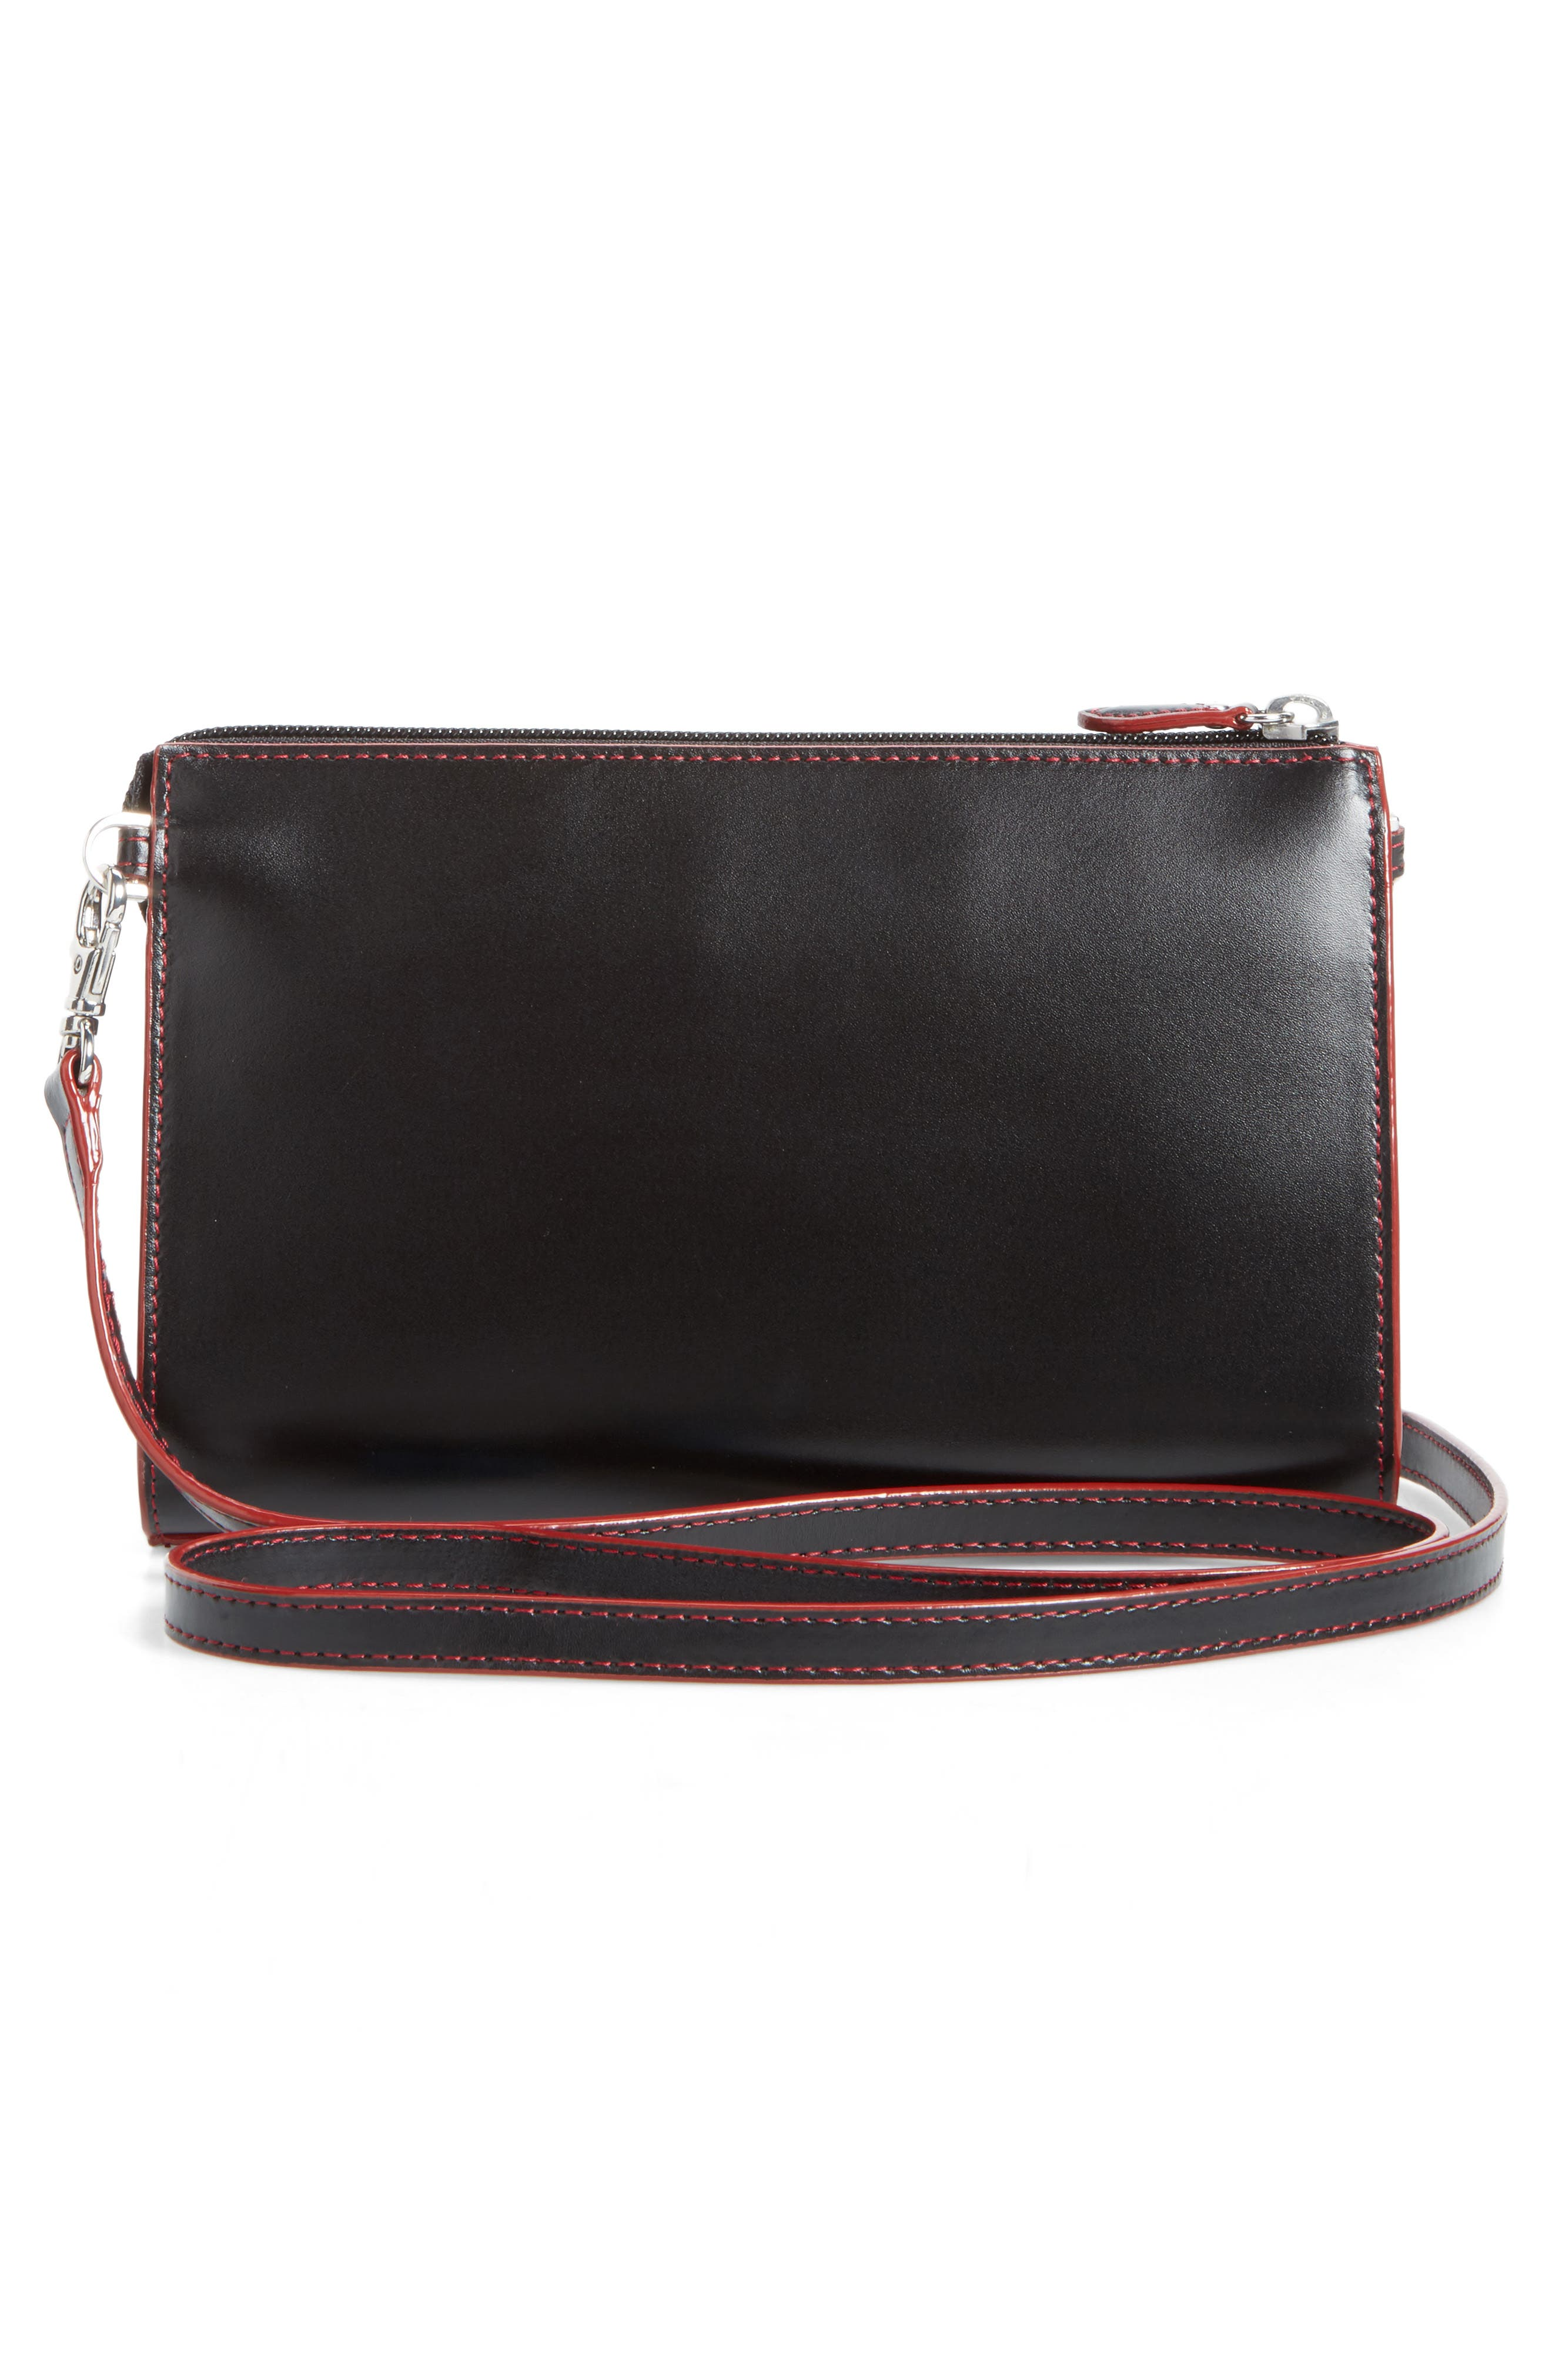 Audrey Under Lock & Key Vicky Convertible Leather Crossbody Bag,                             Alternate thumbnail 3, color,                             001